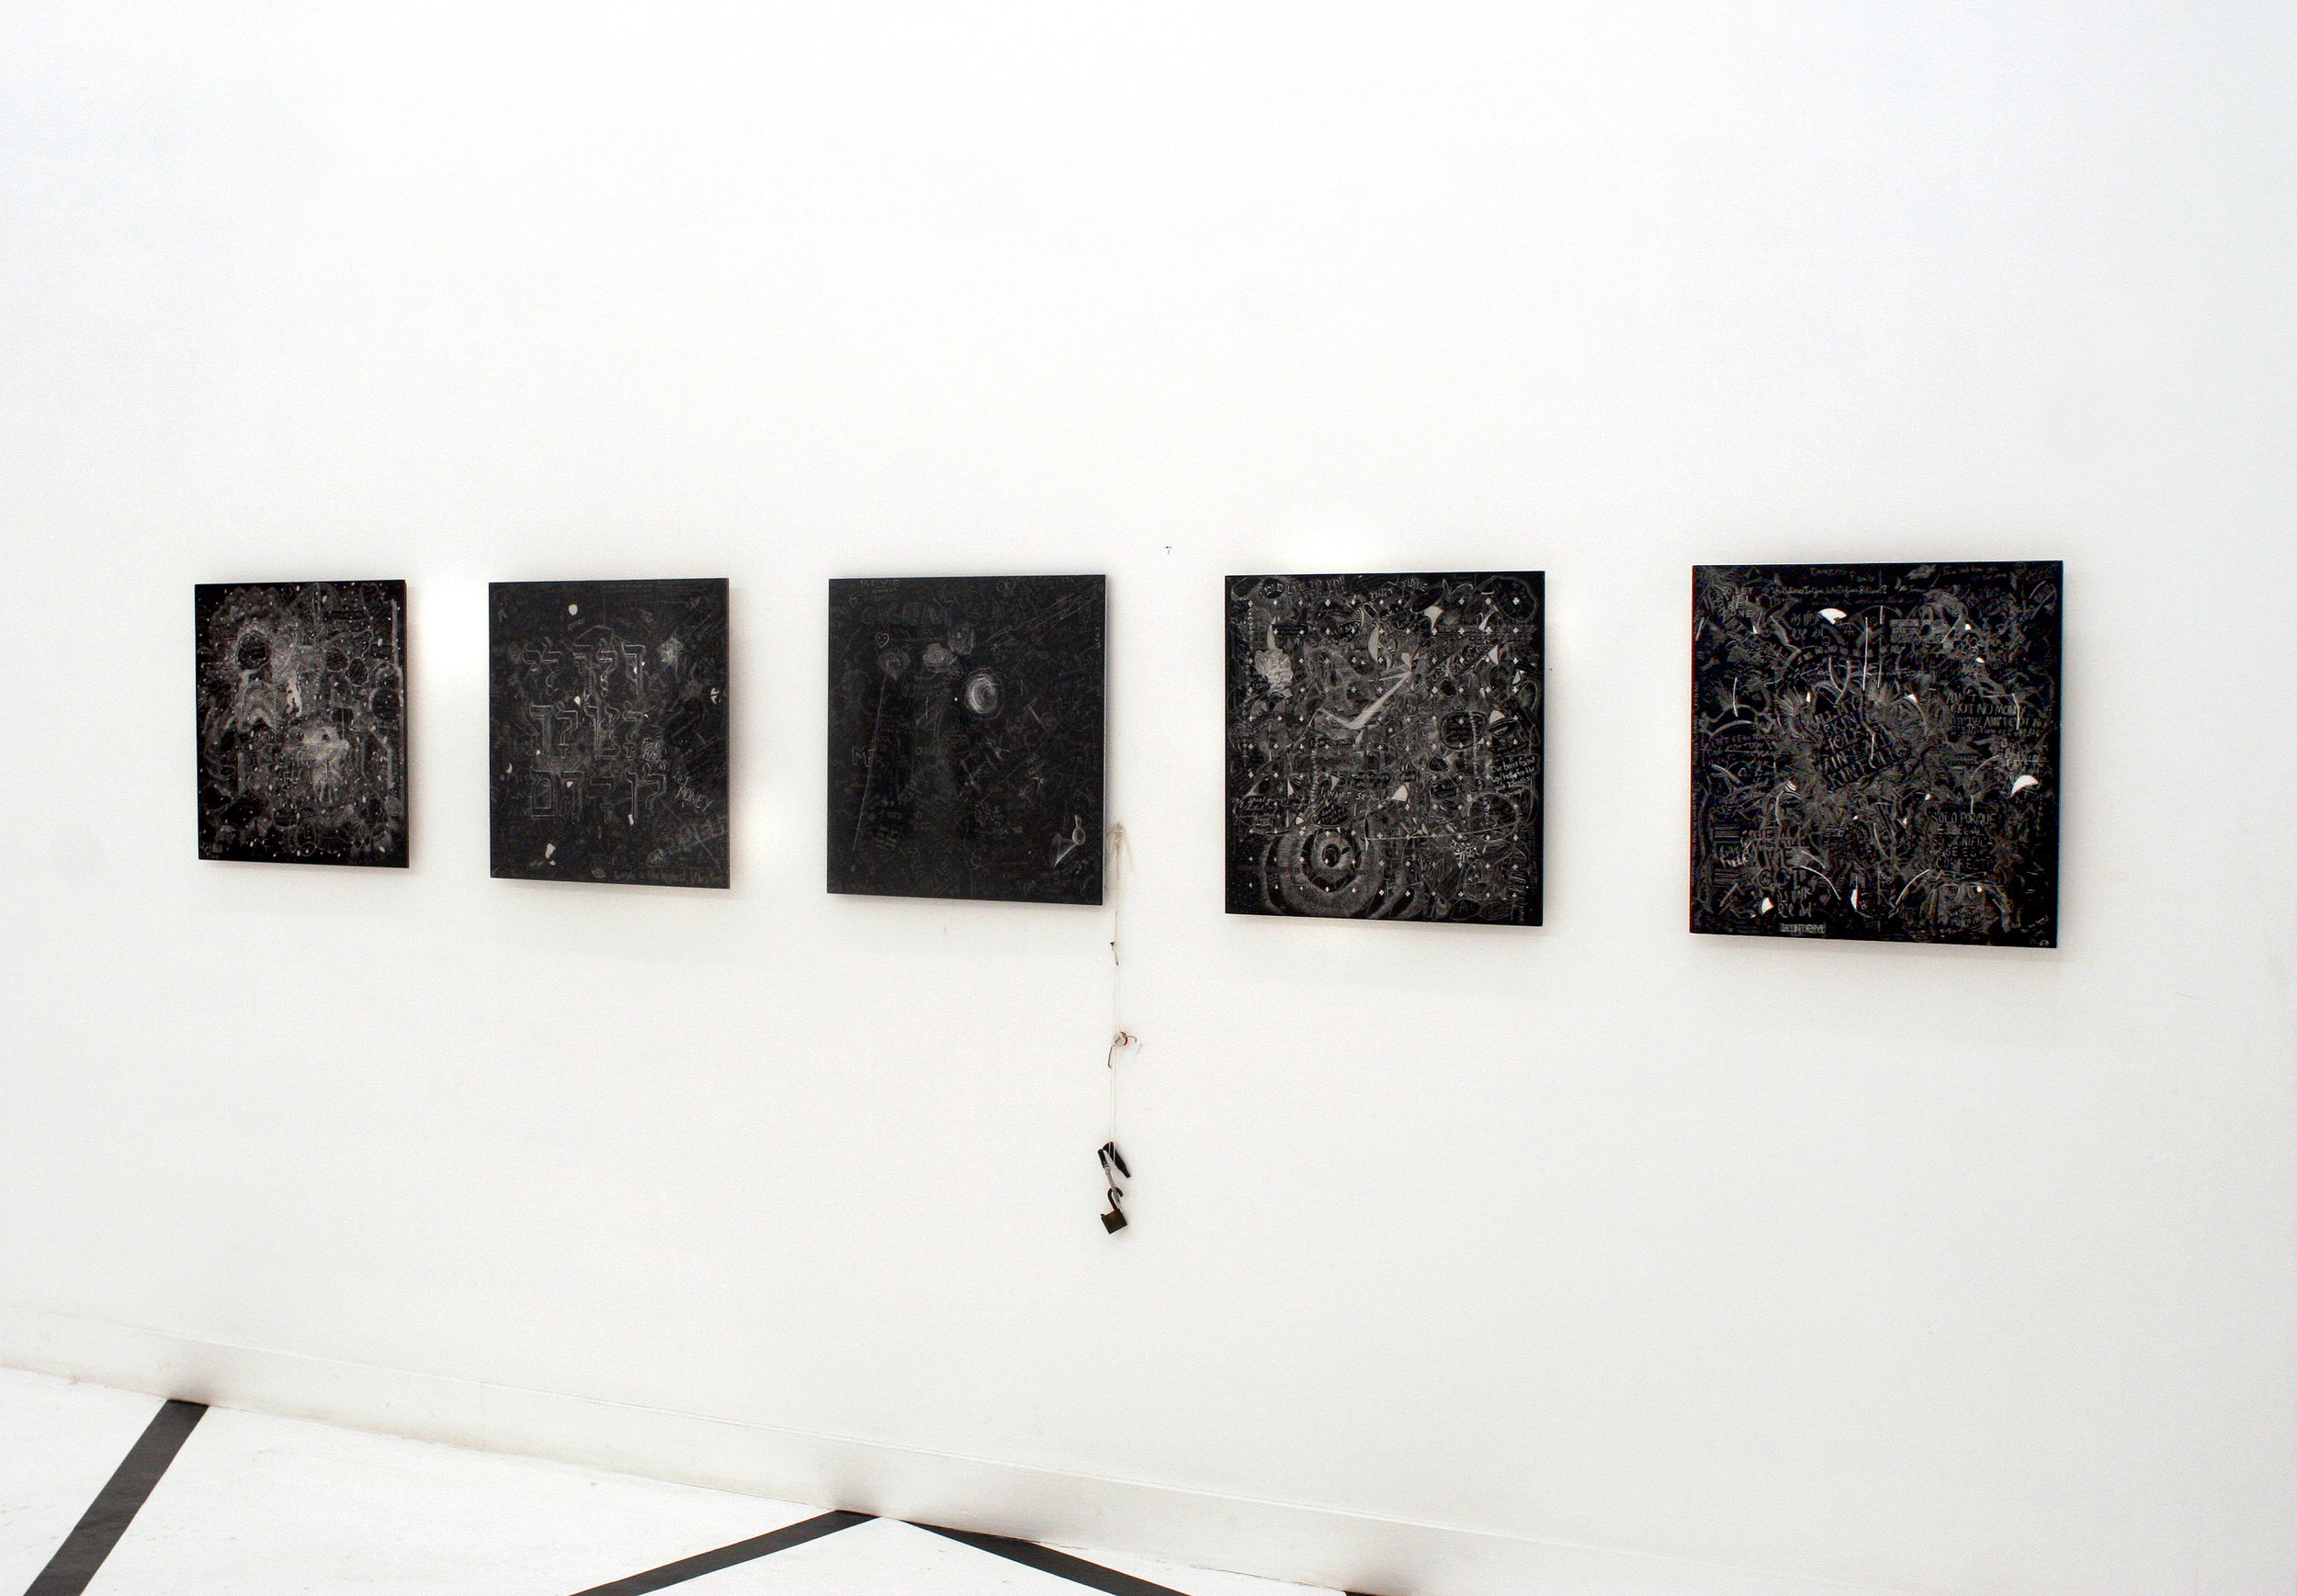 606-331, Crowd sourced collaborative drawings, Incised aluminum with baked enamel finish and carving tools, Installation view, Confection at OHWOW, Miami, FL. 2009